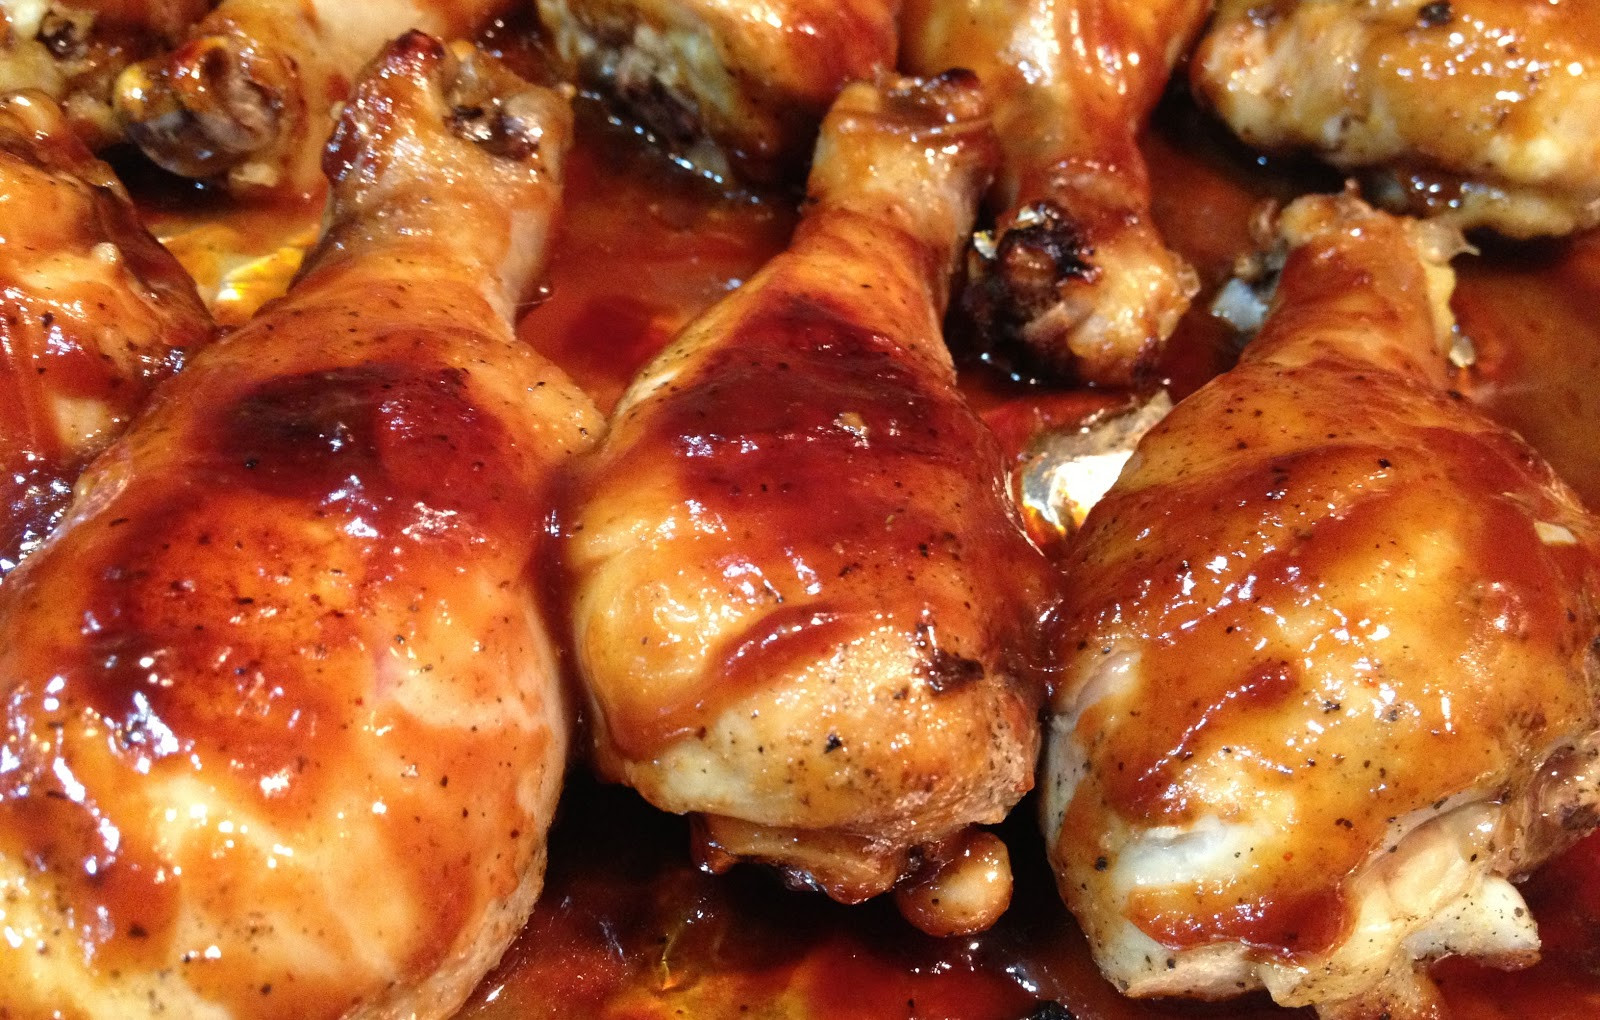 Baked Bbq Chicken Drumsticks  Gourmet Taste for the College Buds Baked BBQ Chicken